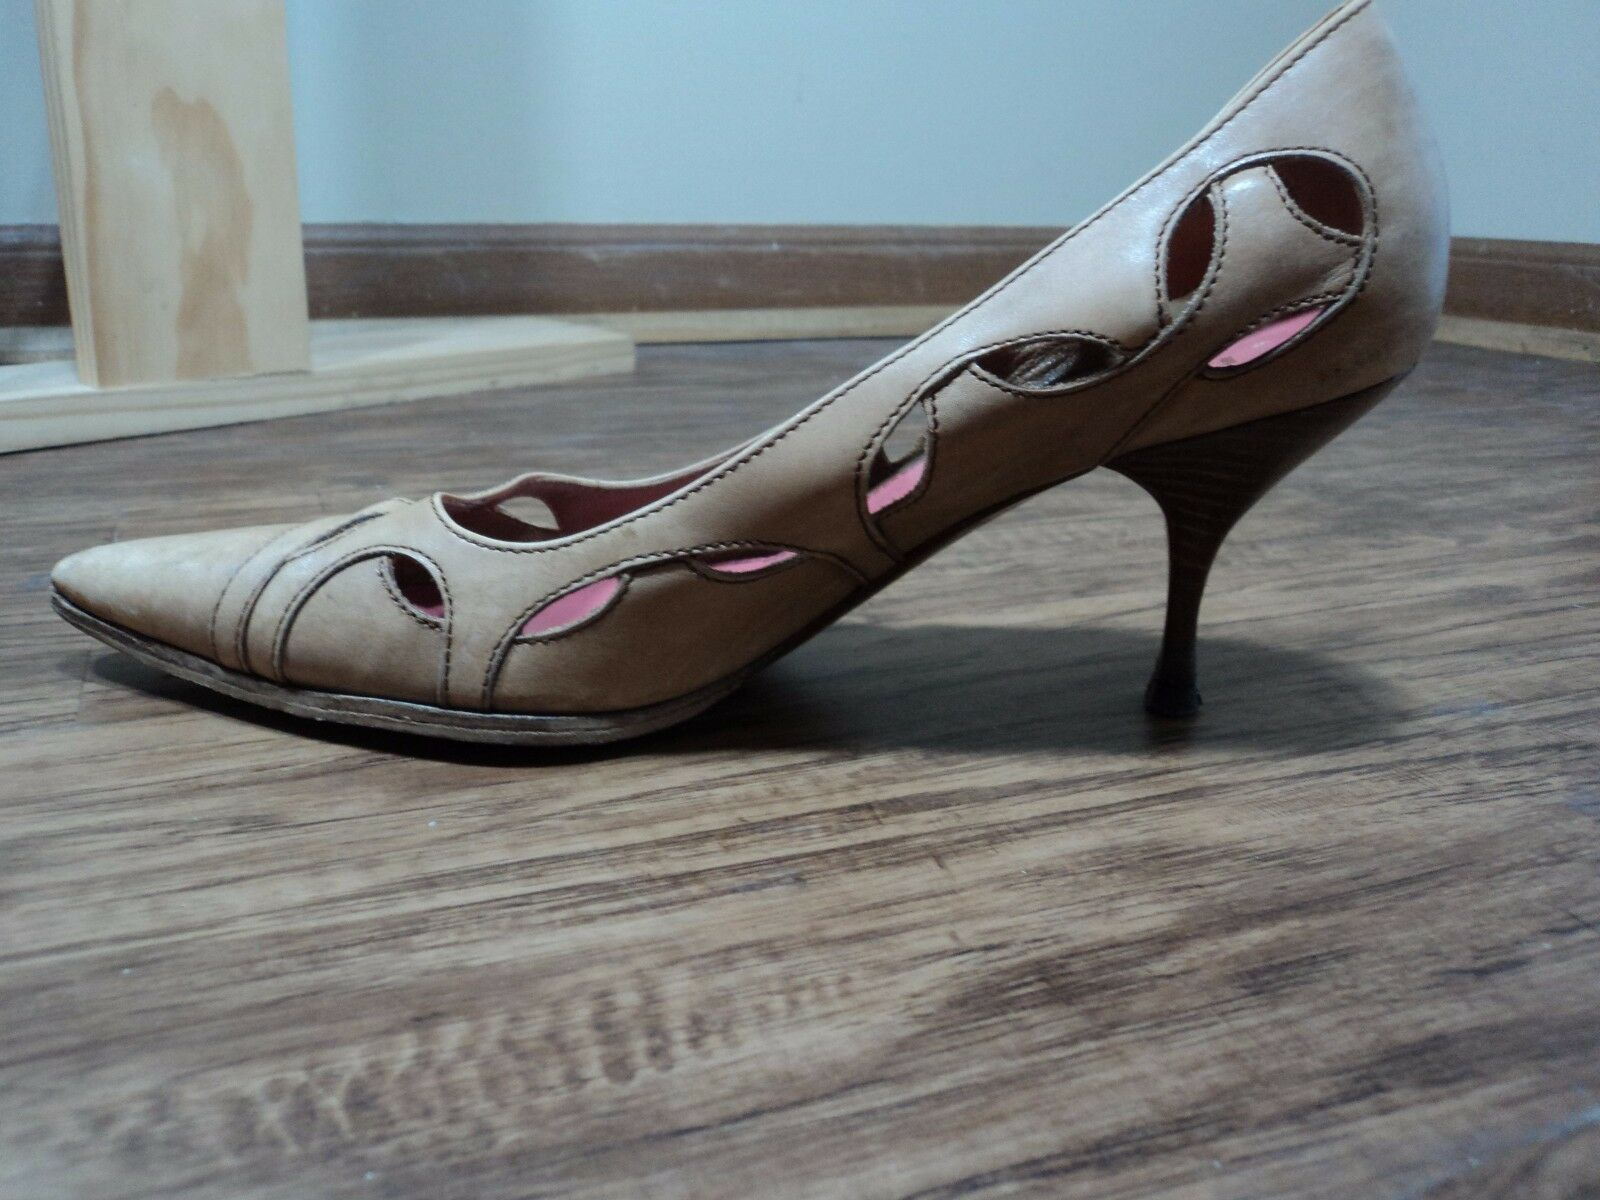 Prada Toe Vero Cuoio Bone Pointed Toe Prada Kitten Heel Stilletos, Size 36.5 (6.5) Elegant d71c6e